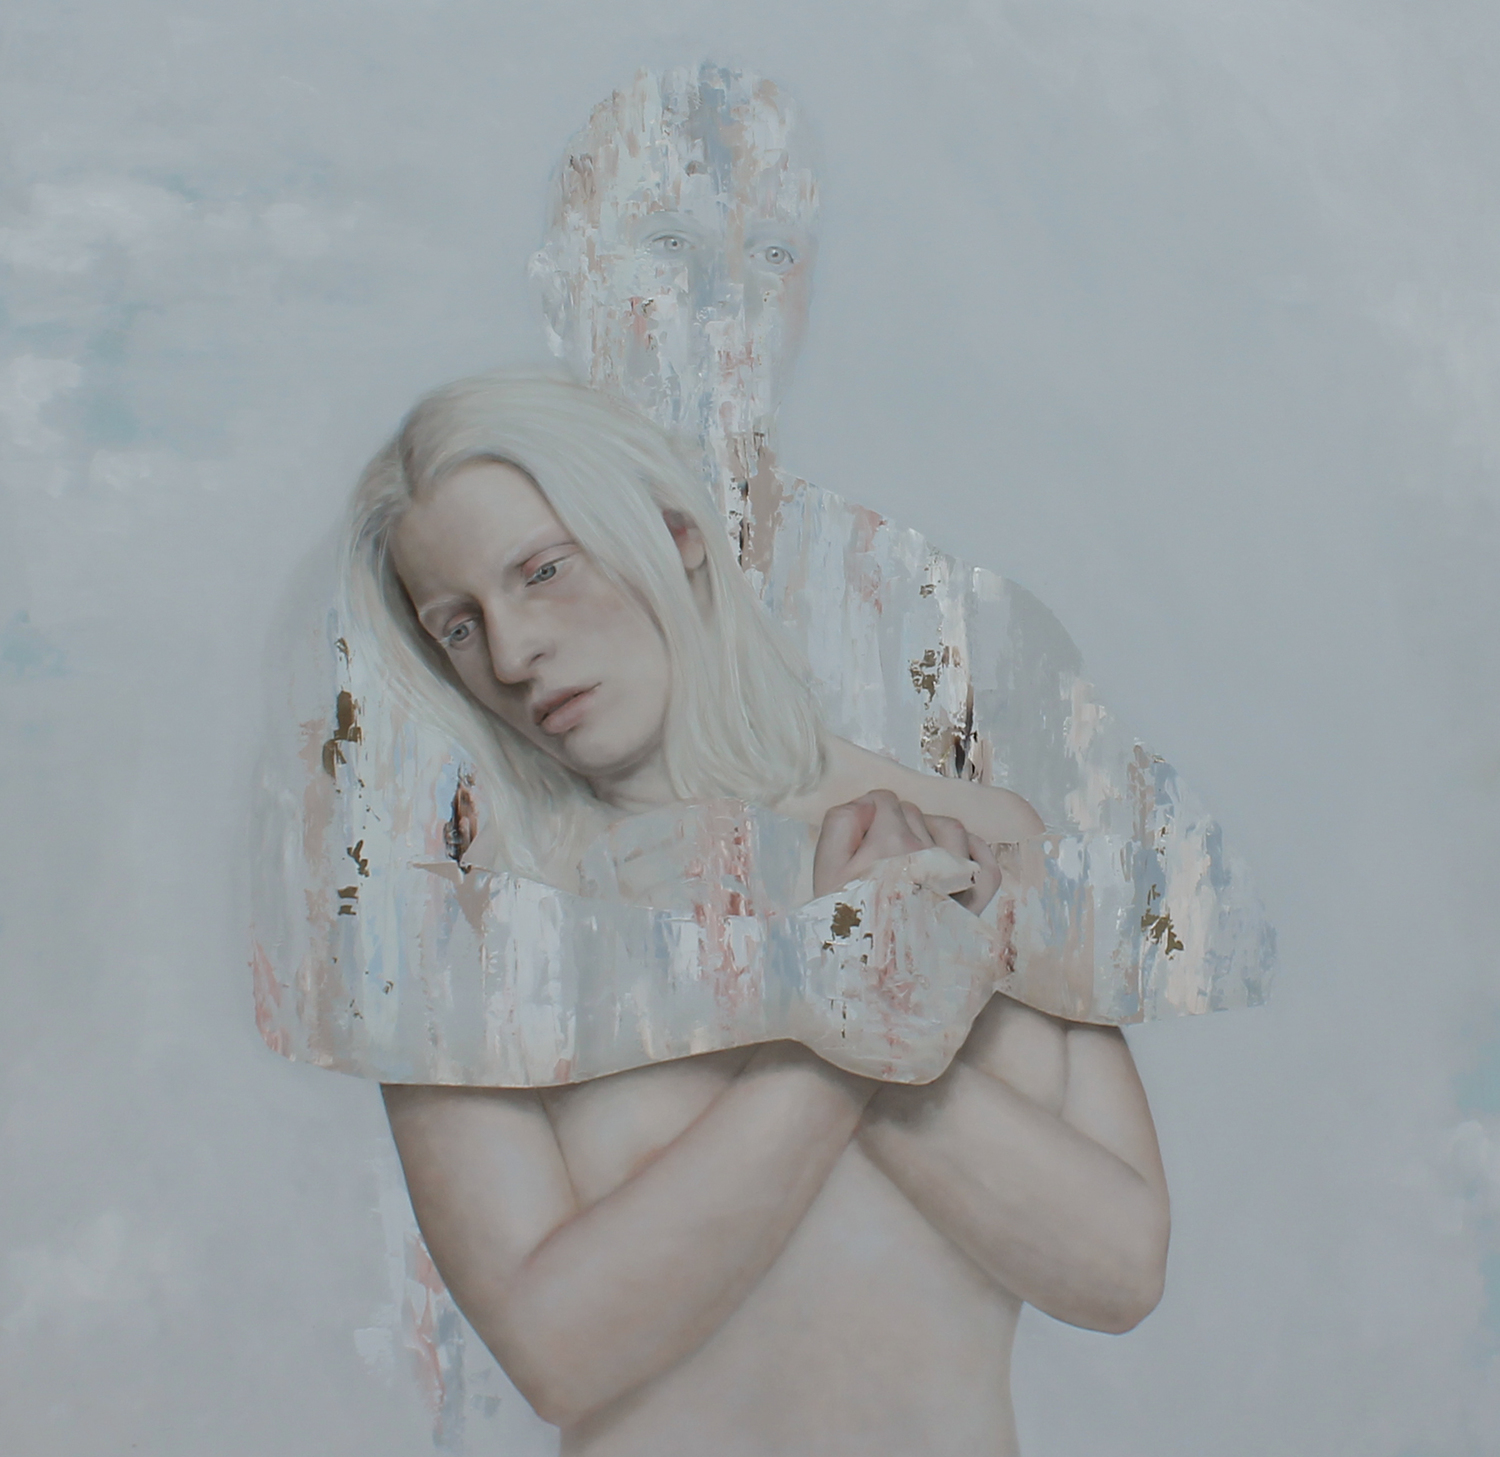 The Depature (2016). Meredith Marsone artist. From the  Abstracted Love  series.